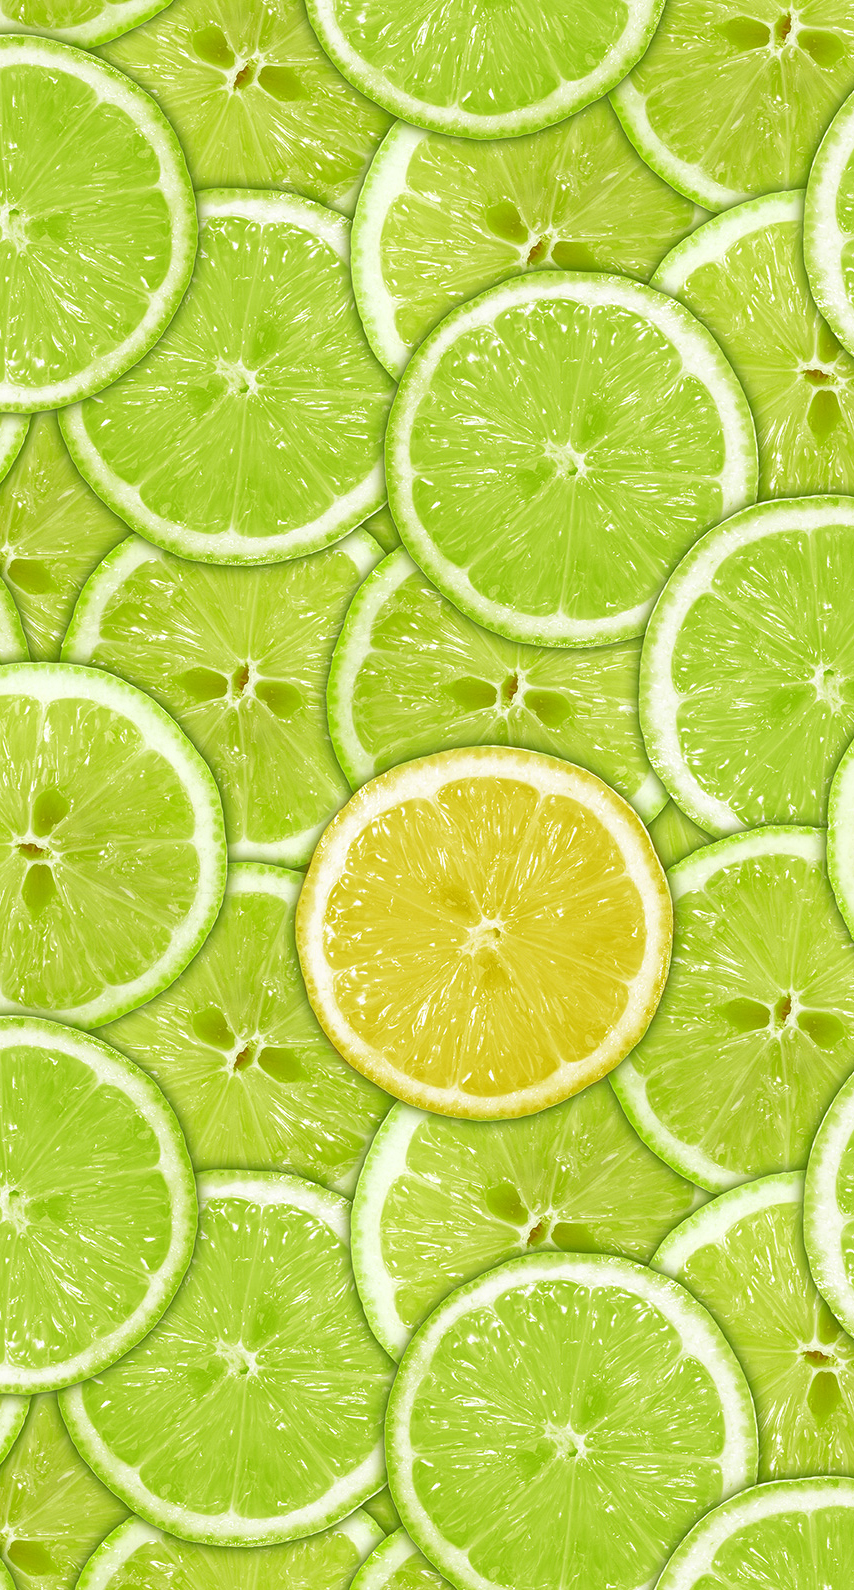 graphic, round, design, background, wallpaper, desktop, illustration, round out, fruit, juicy, juice